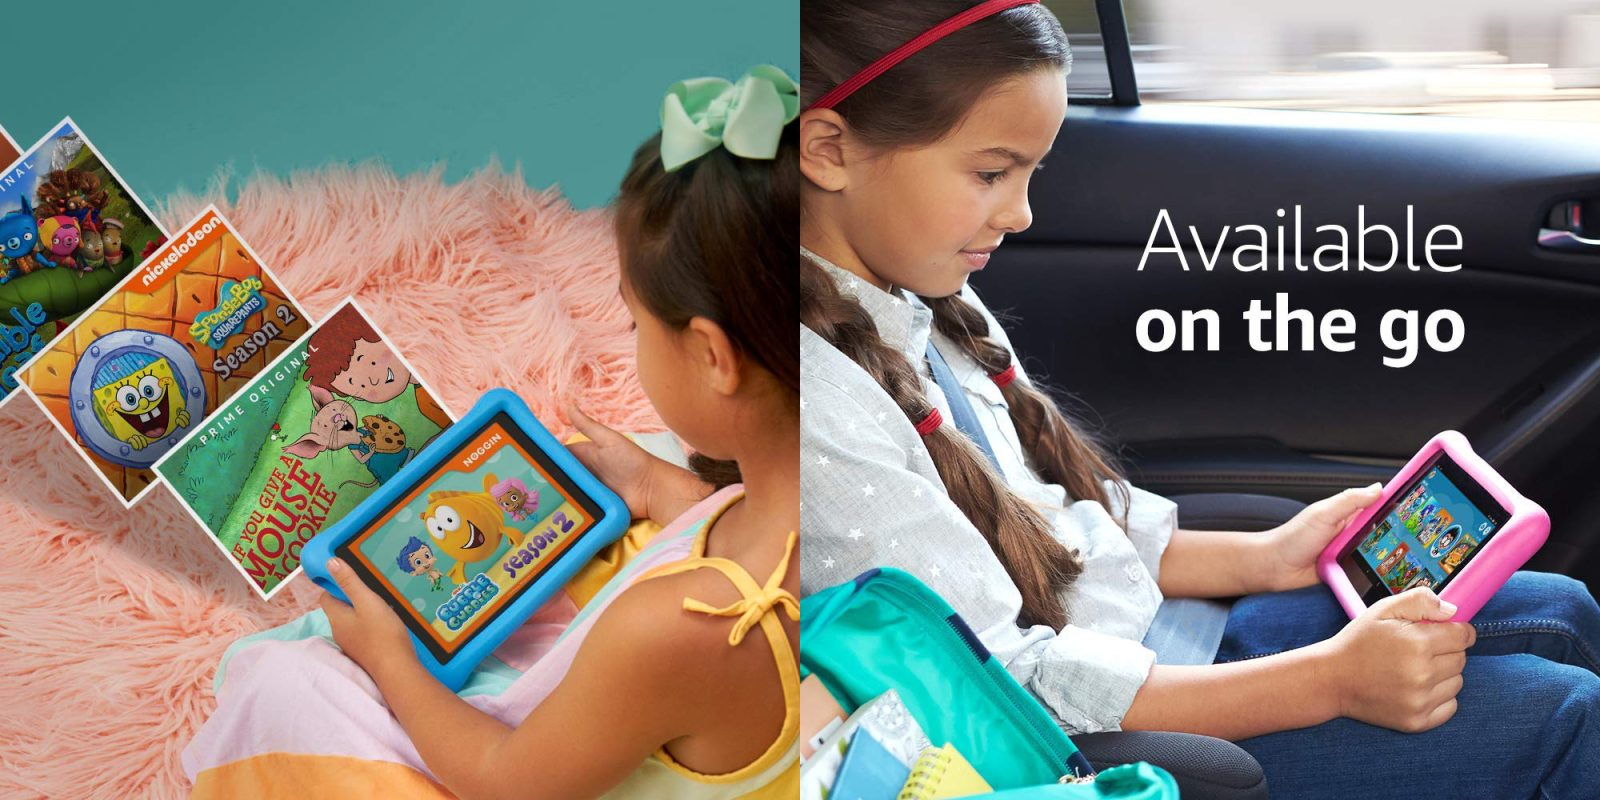 Amazon's Kids Edition Fire HD 8/10.1 are up to $40 off from $100